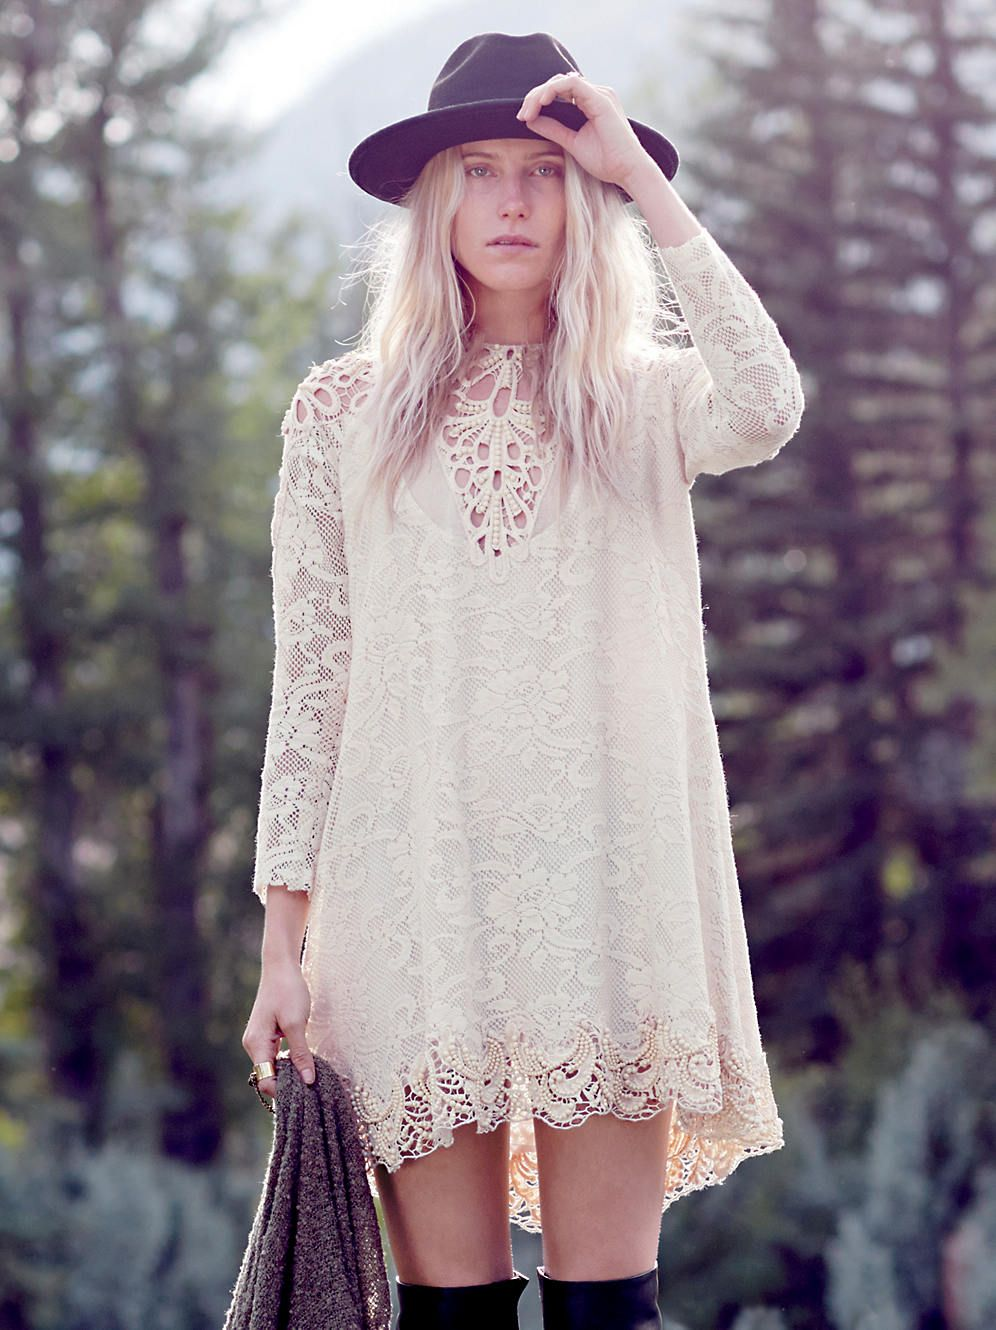 646052933be3 Free People - Women's Boho Clothing & Bohemian Fashion | dress up ...